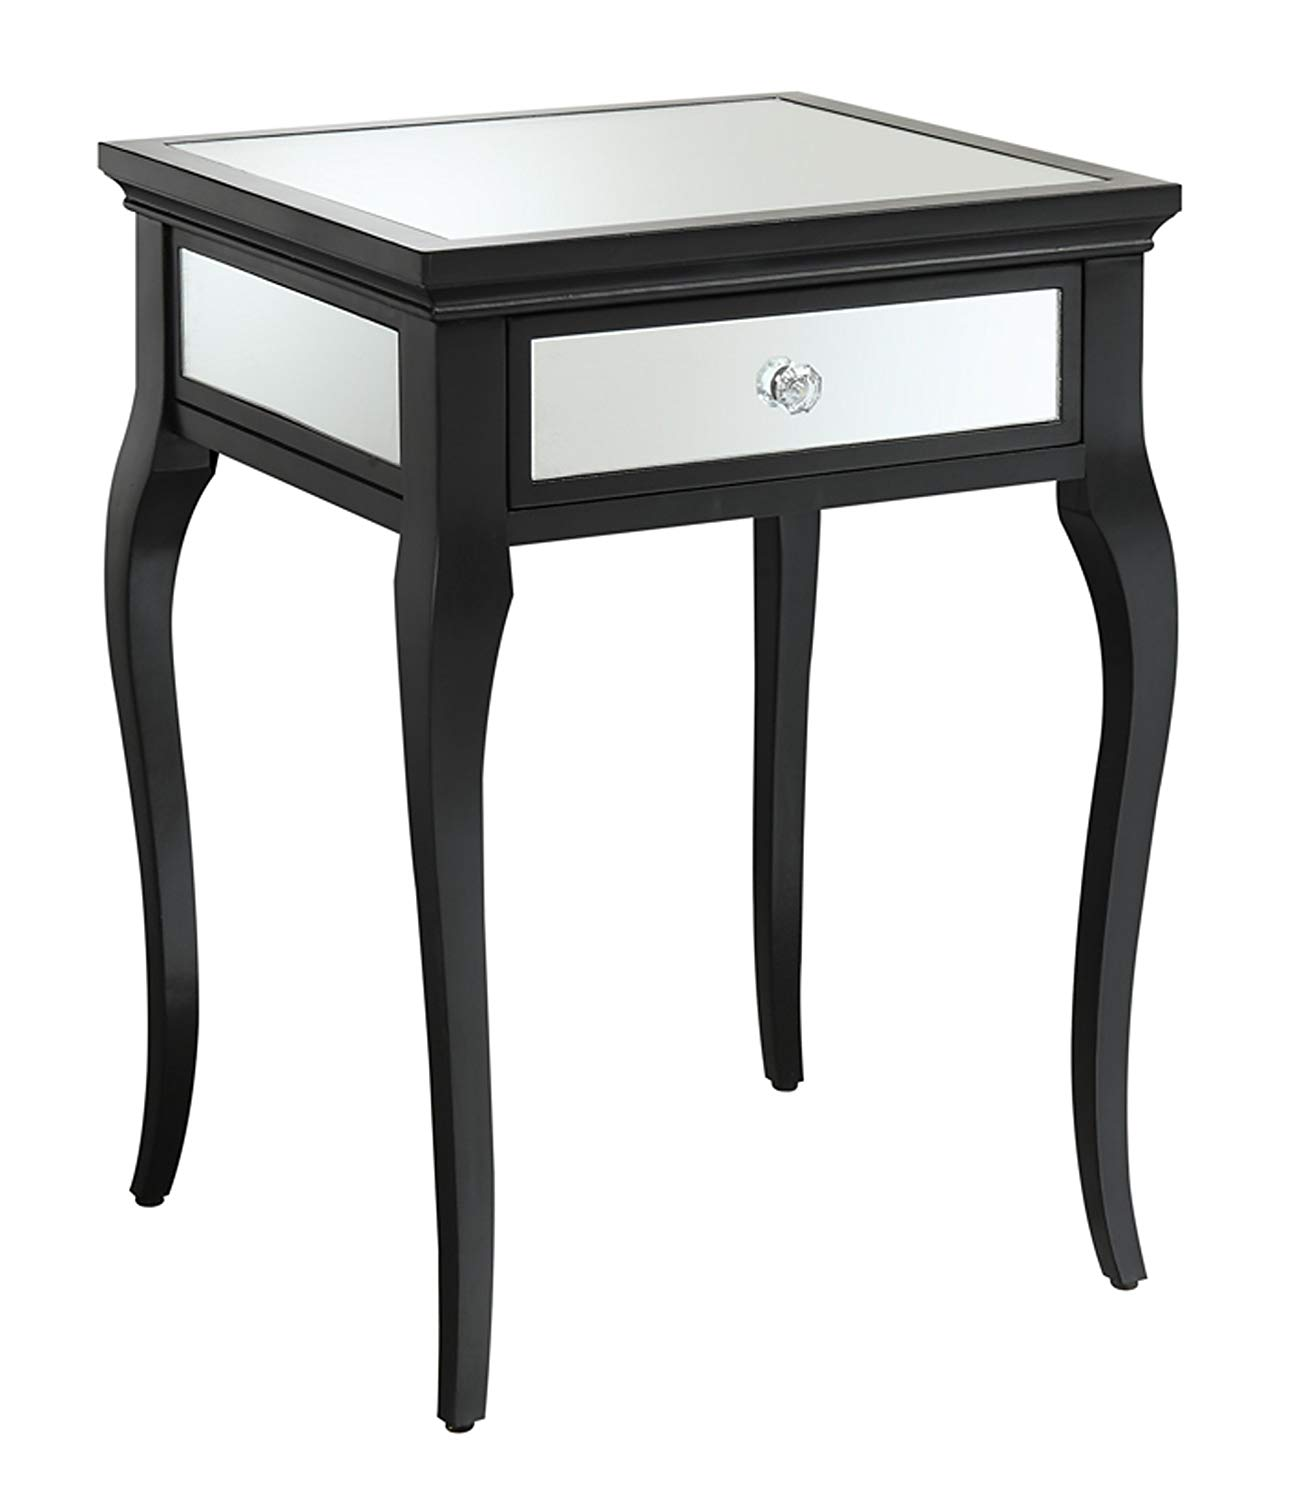 convenience concepts milan mirrored end table black kitchen dining sofa tables distressed round pedestal inch nightstand cuisinart meat claws soft leather leons king mattress navy